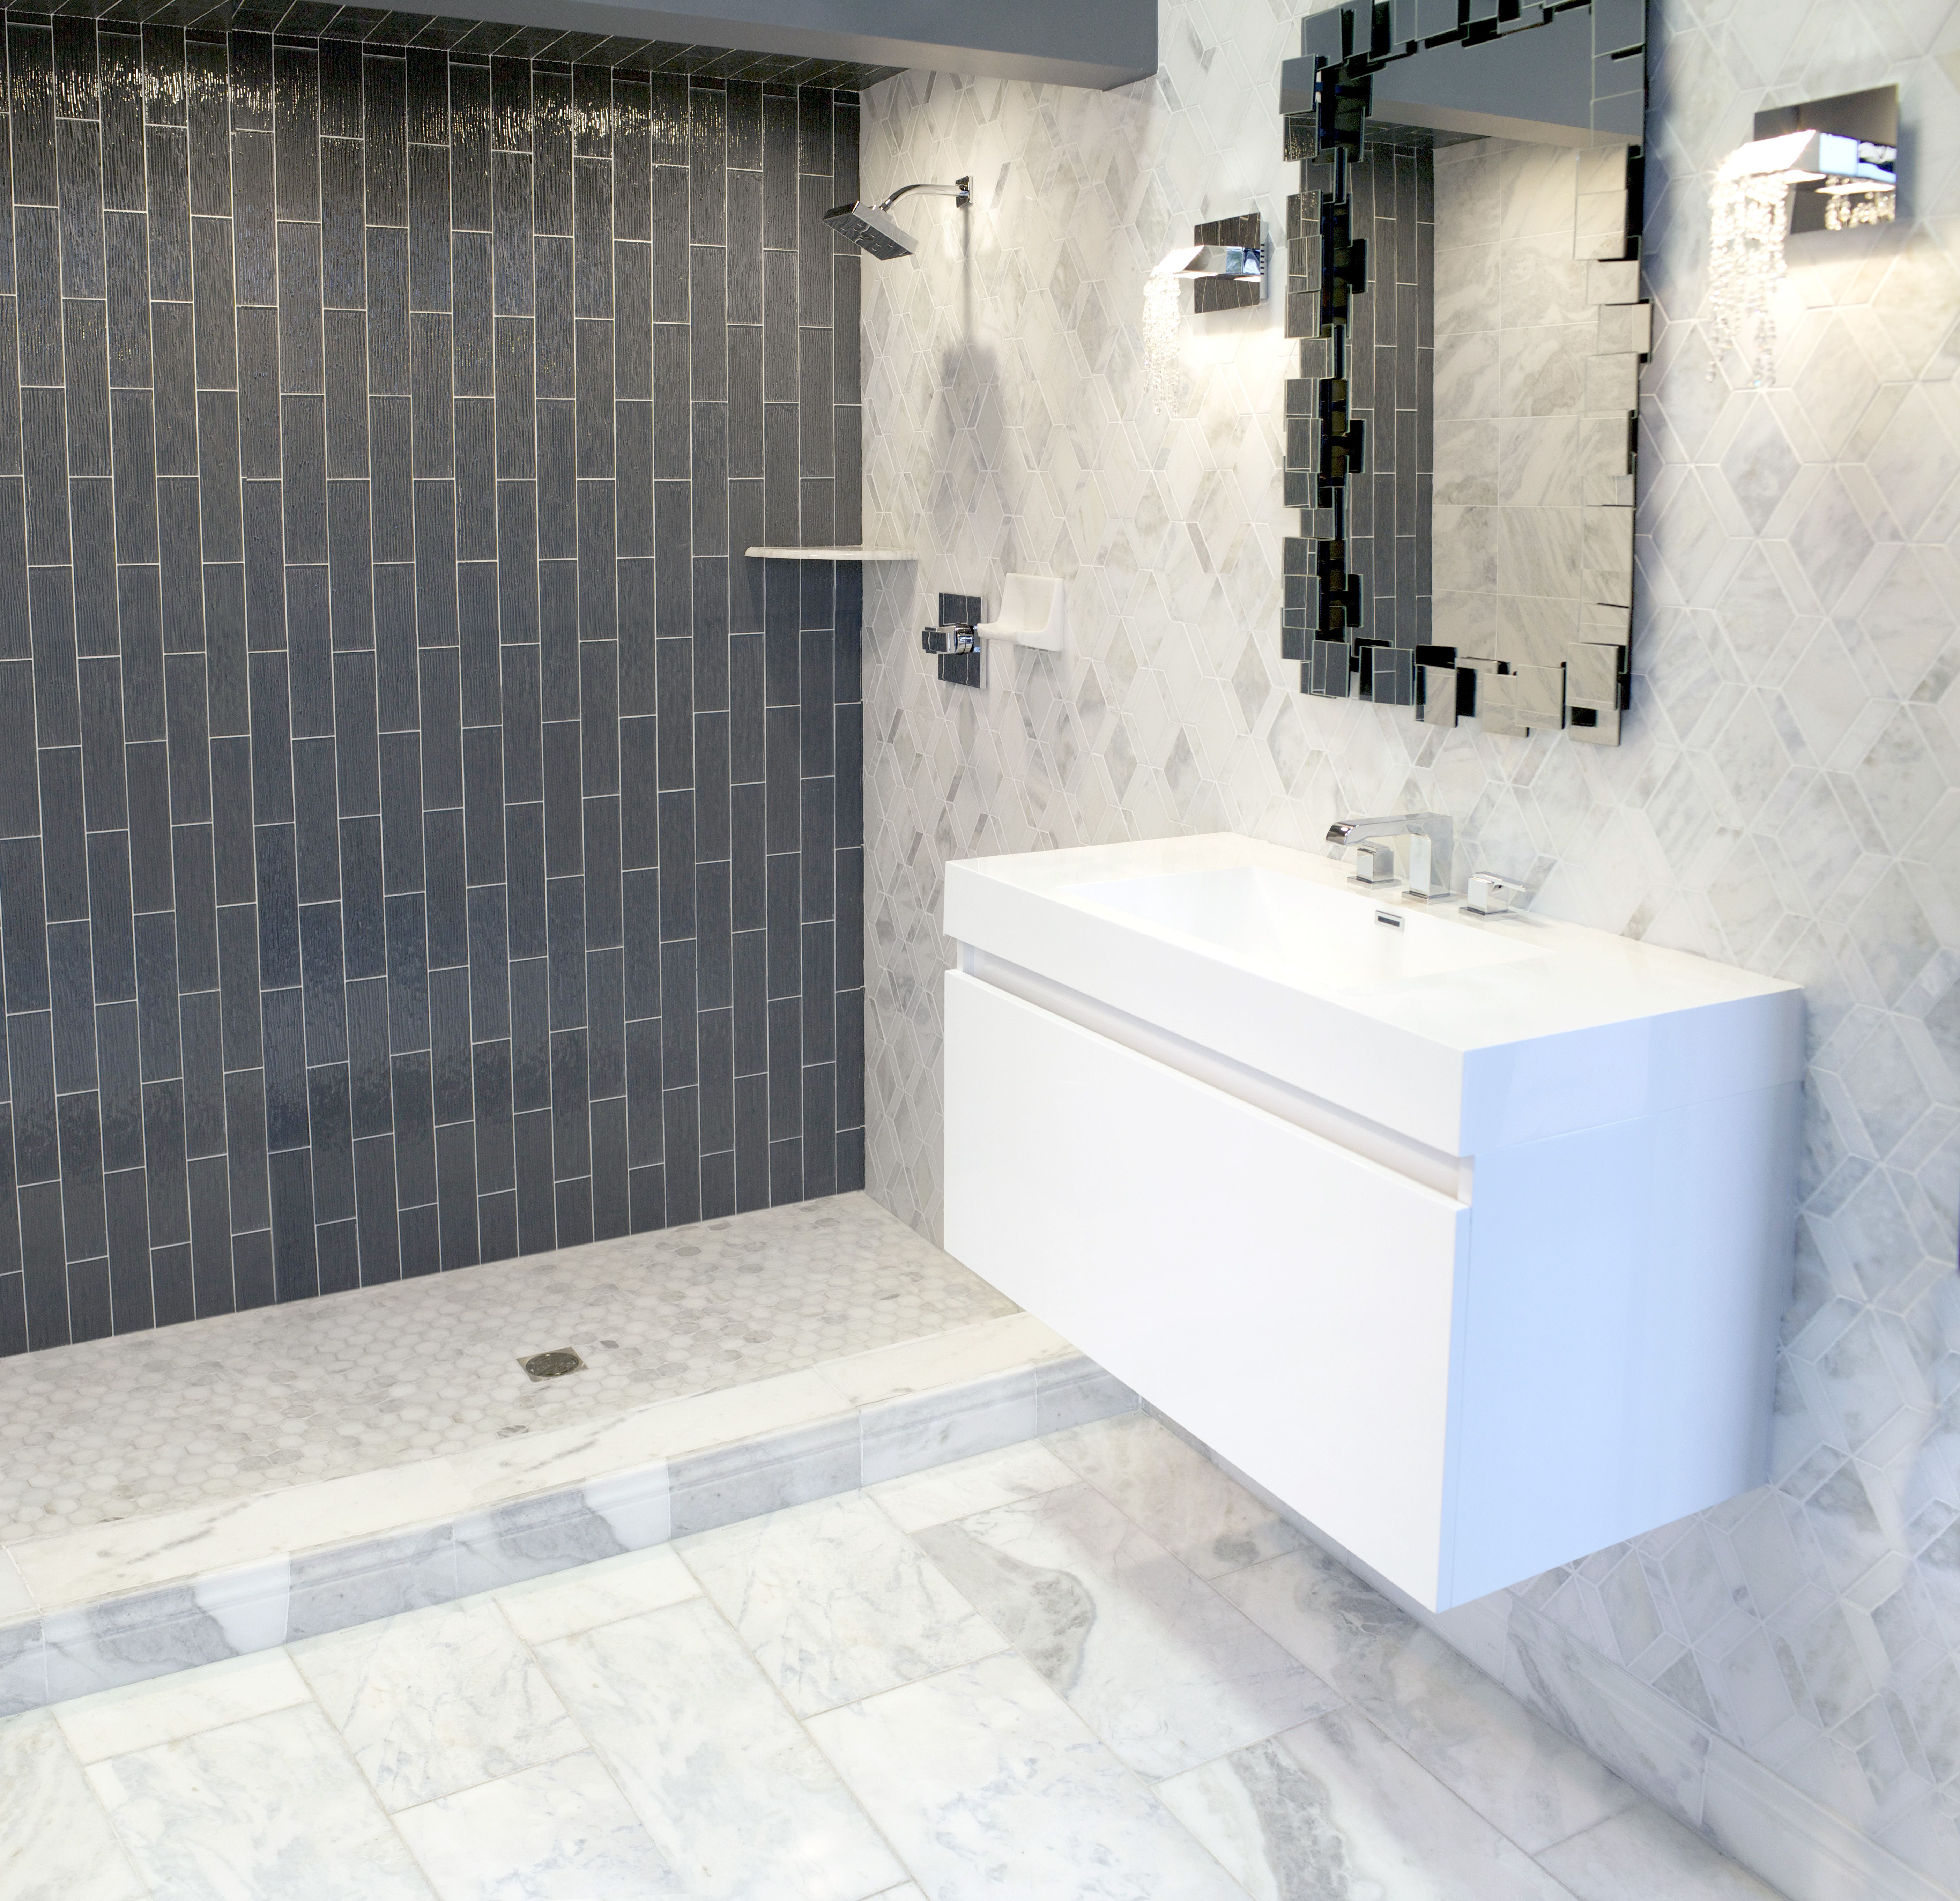 The Tempesta Neve Marble collection displayed here with the ...